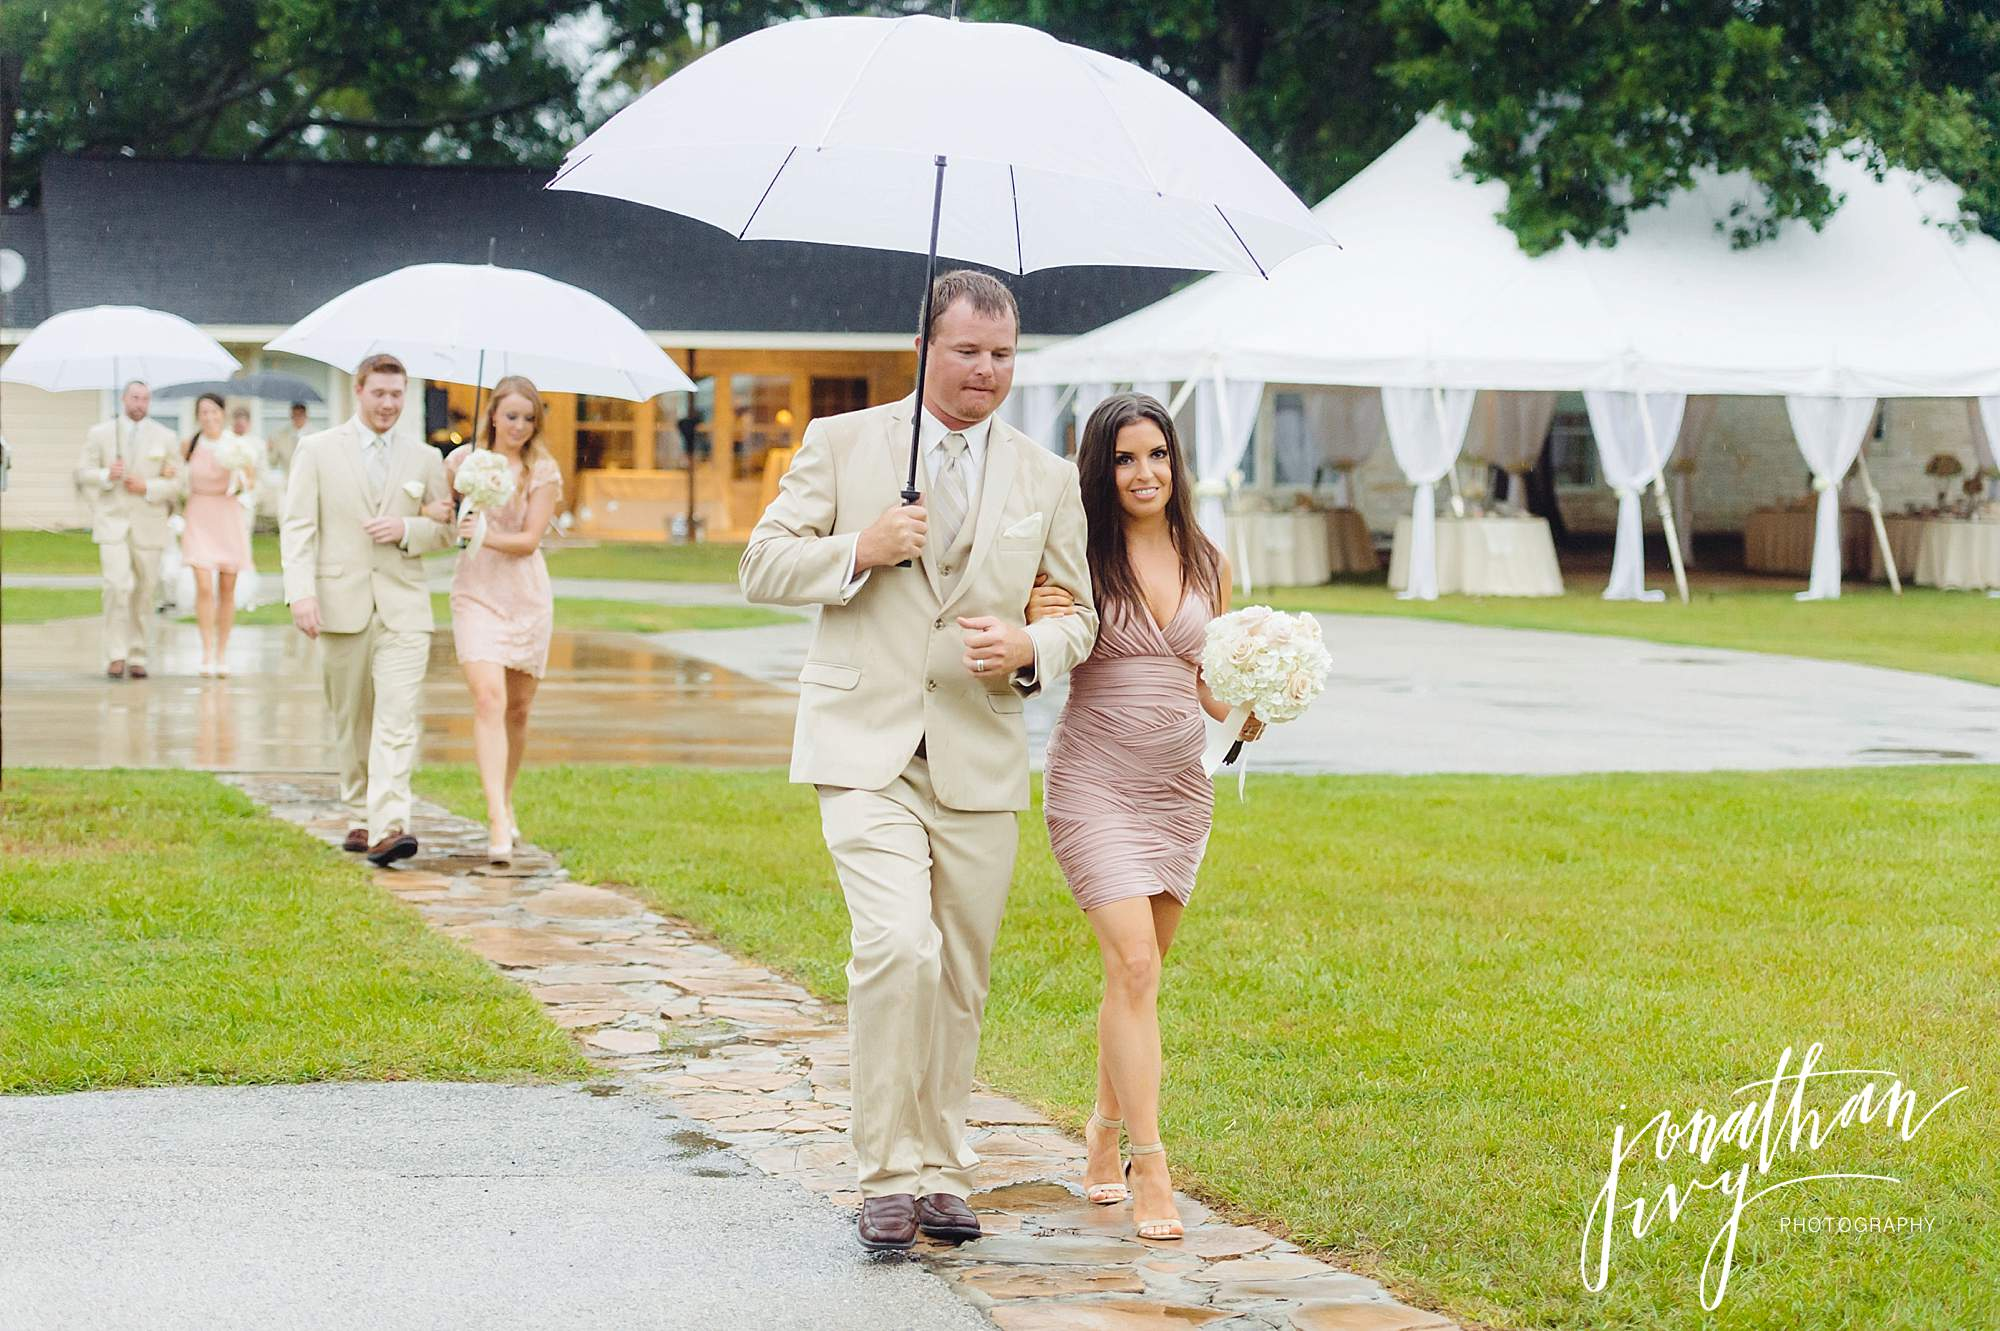 Outdoor-Tented-Wedding-in-the-Rain_0006